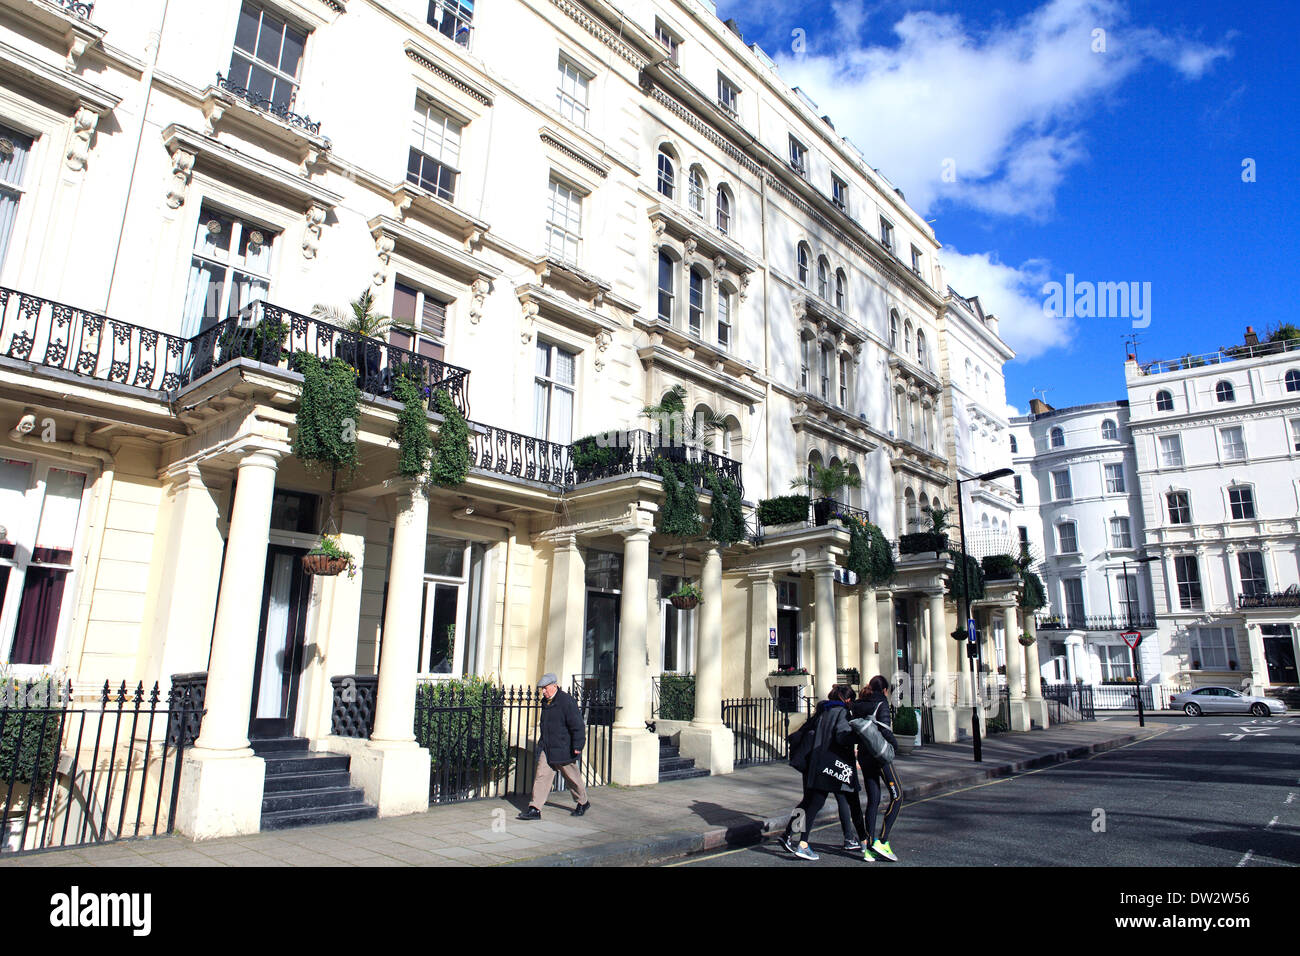 united kingdom london royal borough of kensington and chelsea prince's square w2 - Stock Image